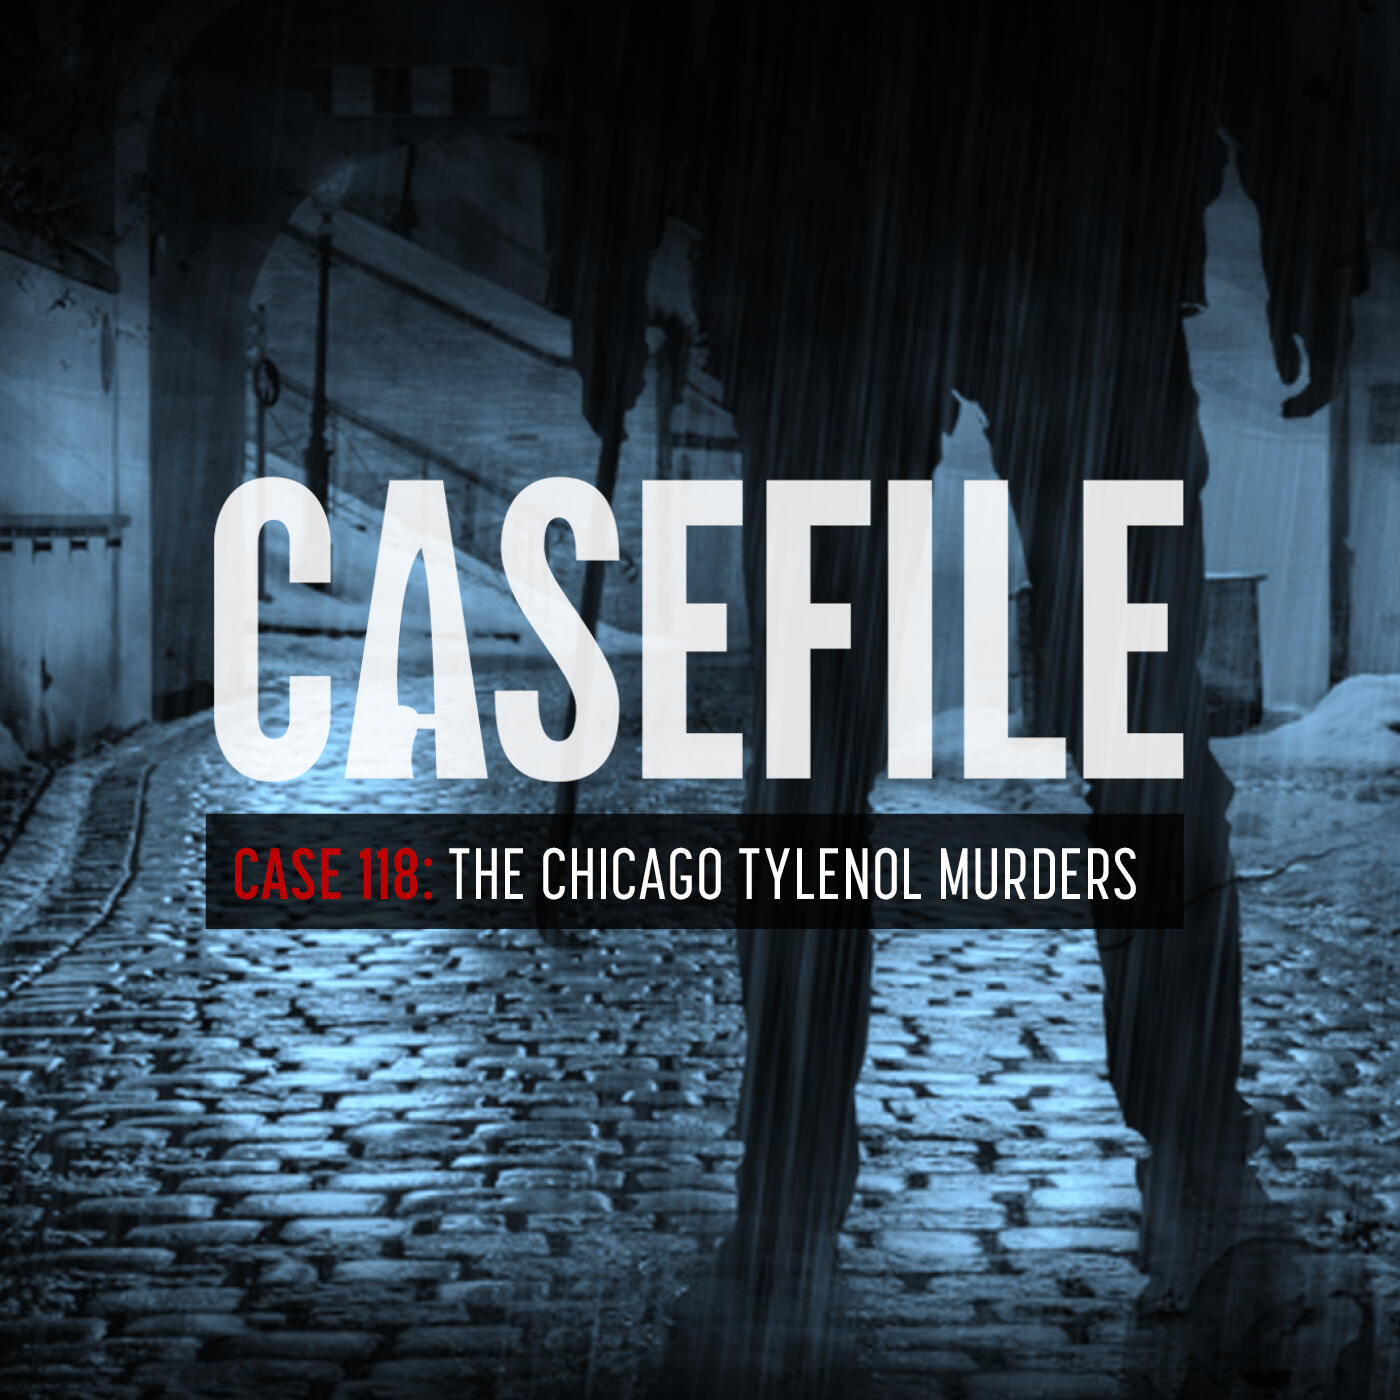 Case 118: The Chicago Tylenol Murders